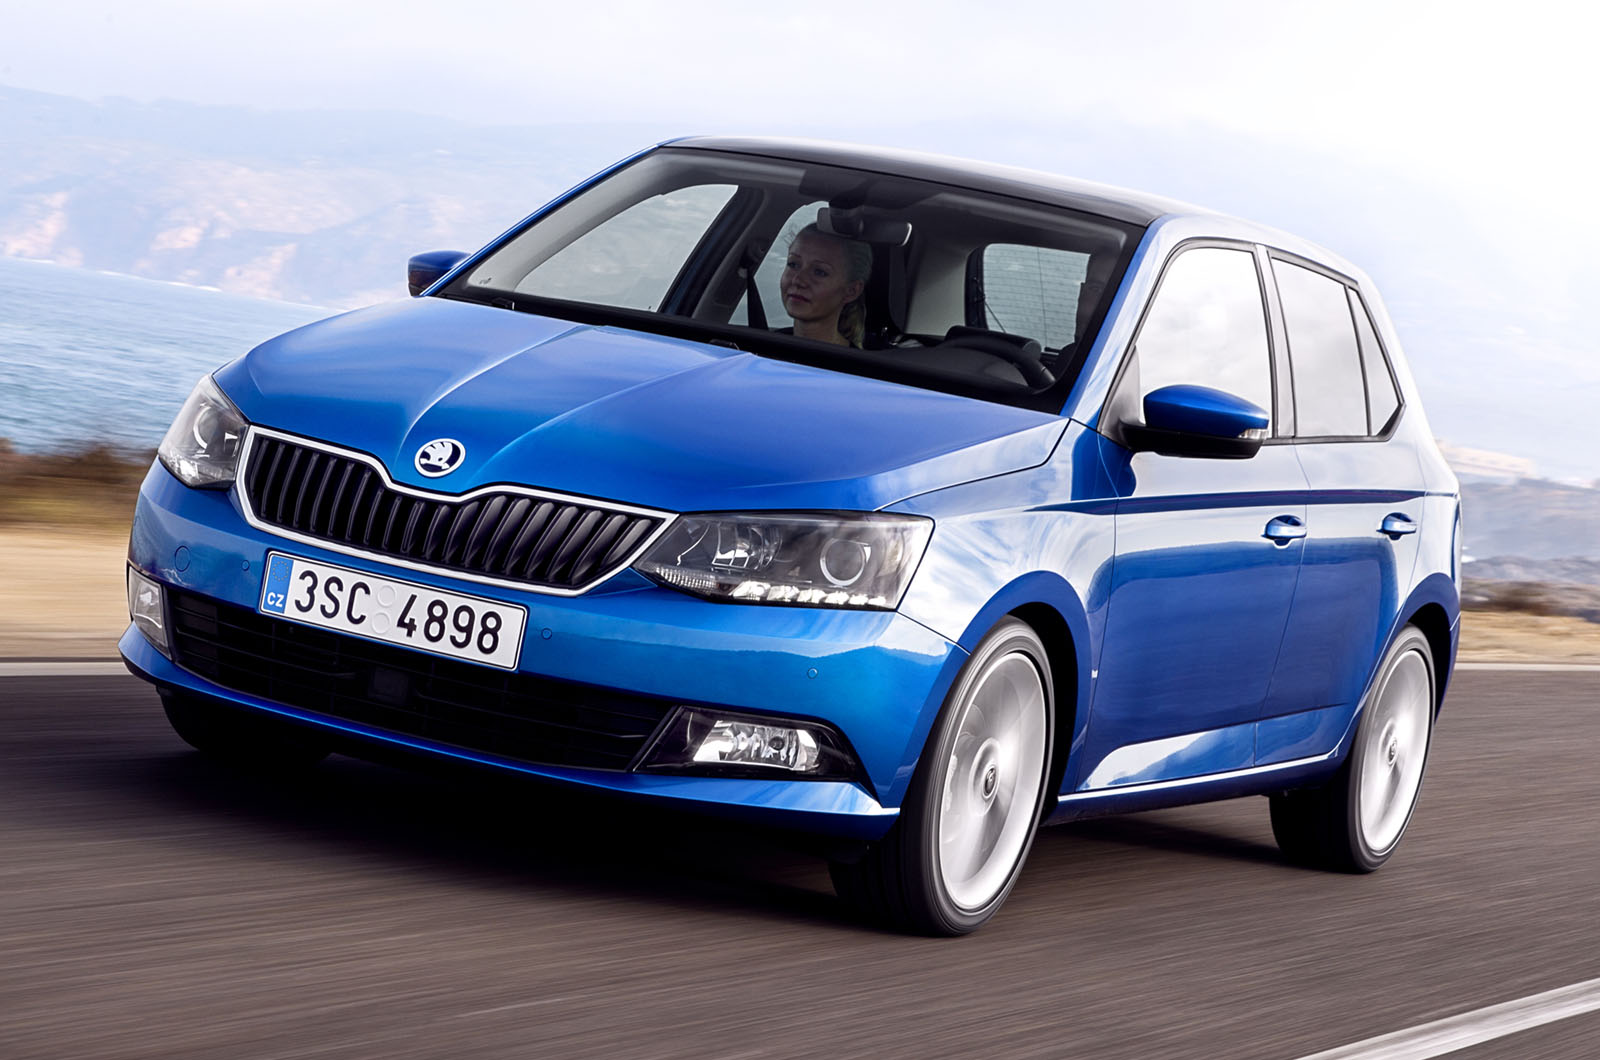 2014 skoda fabia 1 4 tdi se first drive review autocar. Black Bedroom Furniture Sets. Home Design Ideas